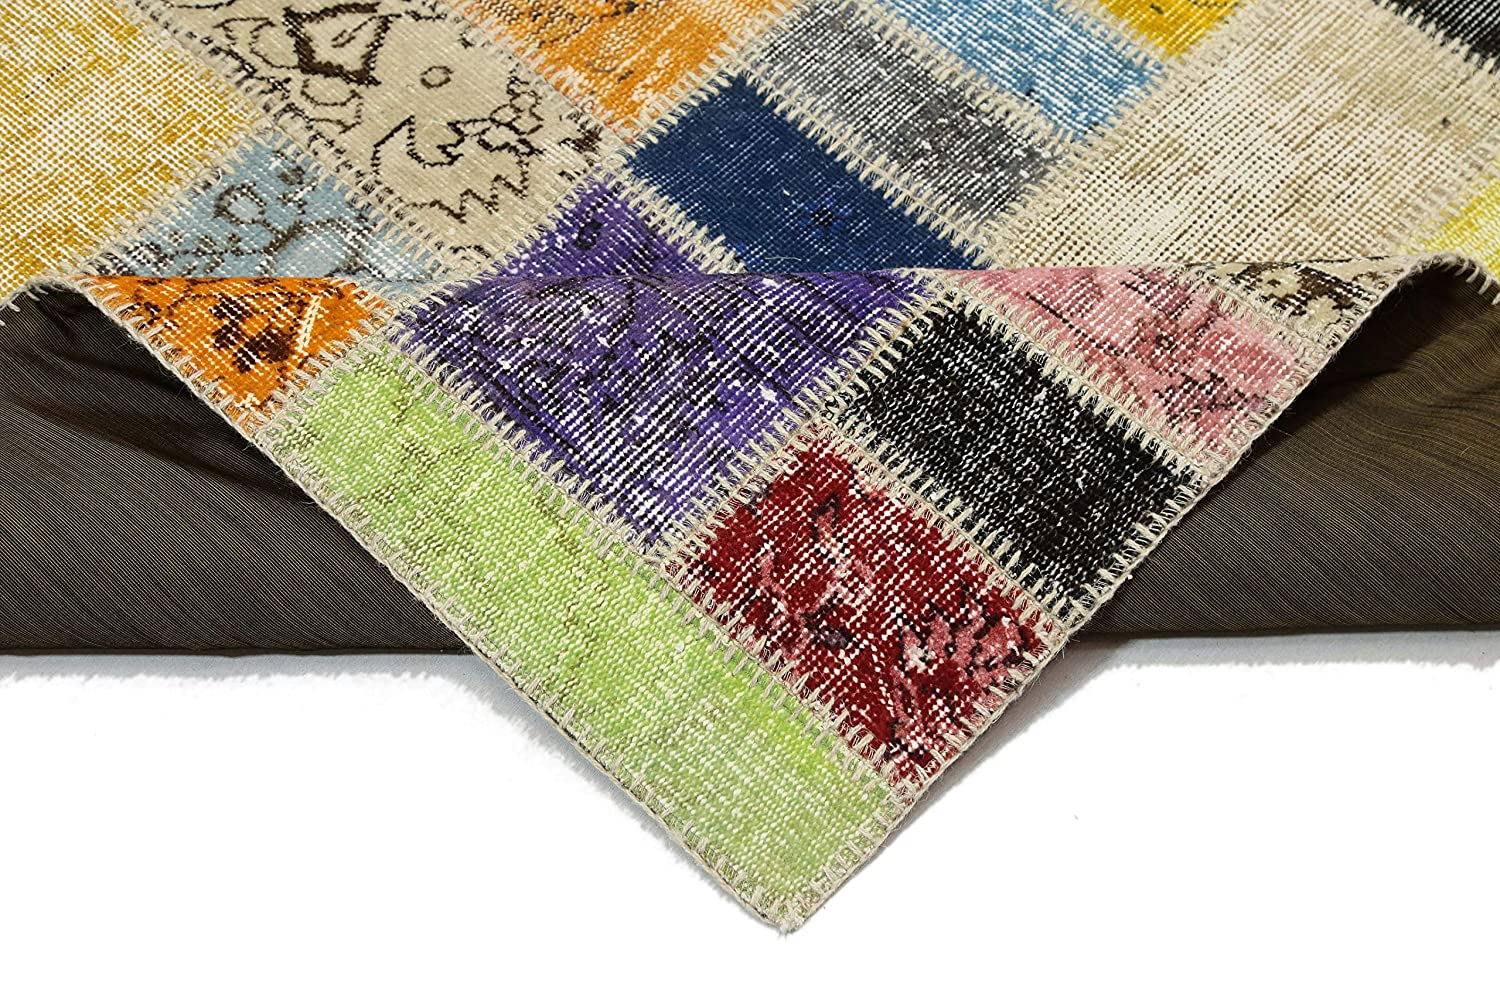 Amazon Com Pozlu Handwoven Premium Patchwork Rug 3 9 X 6 1 Handmade Patch Design Natural Wool Area Rug Checkered Colorful Handmade